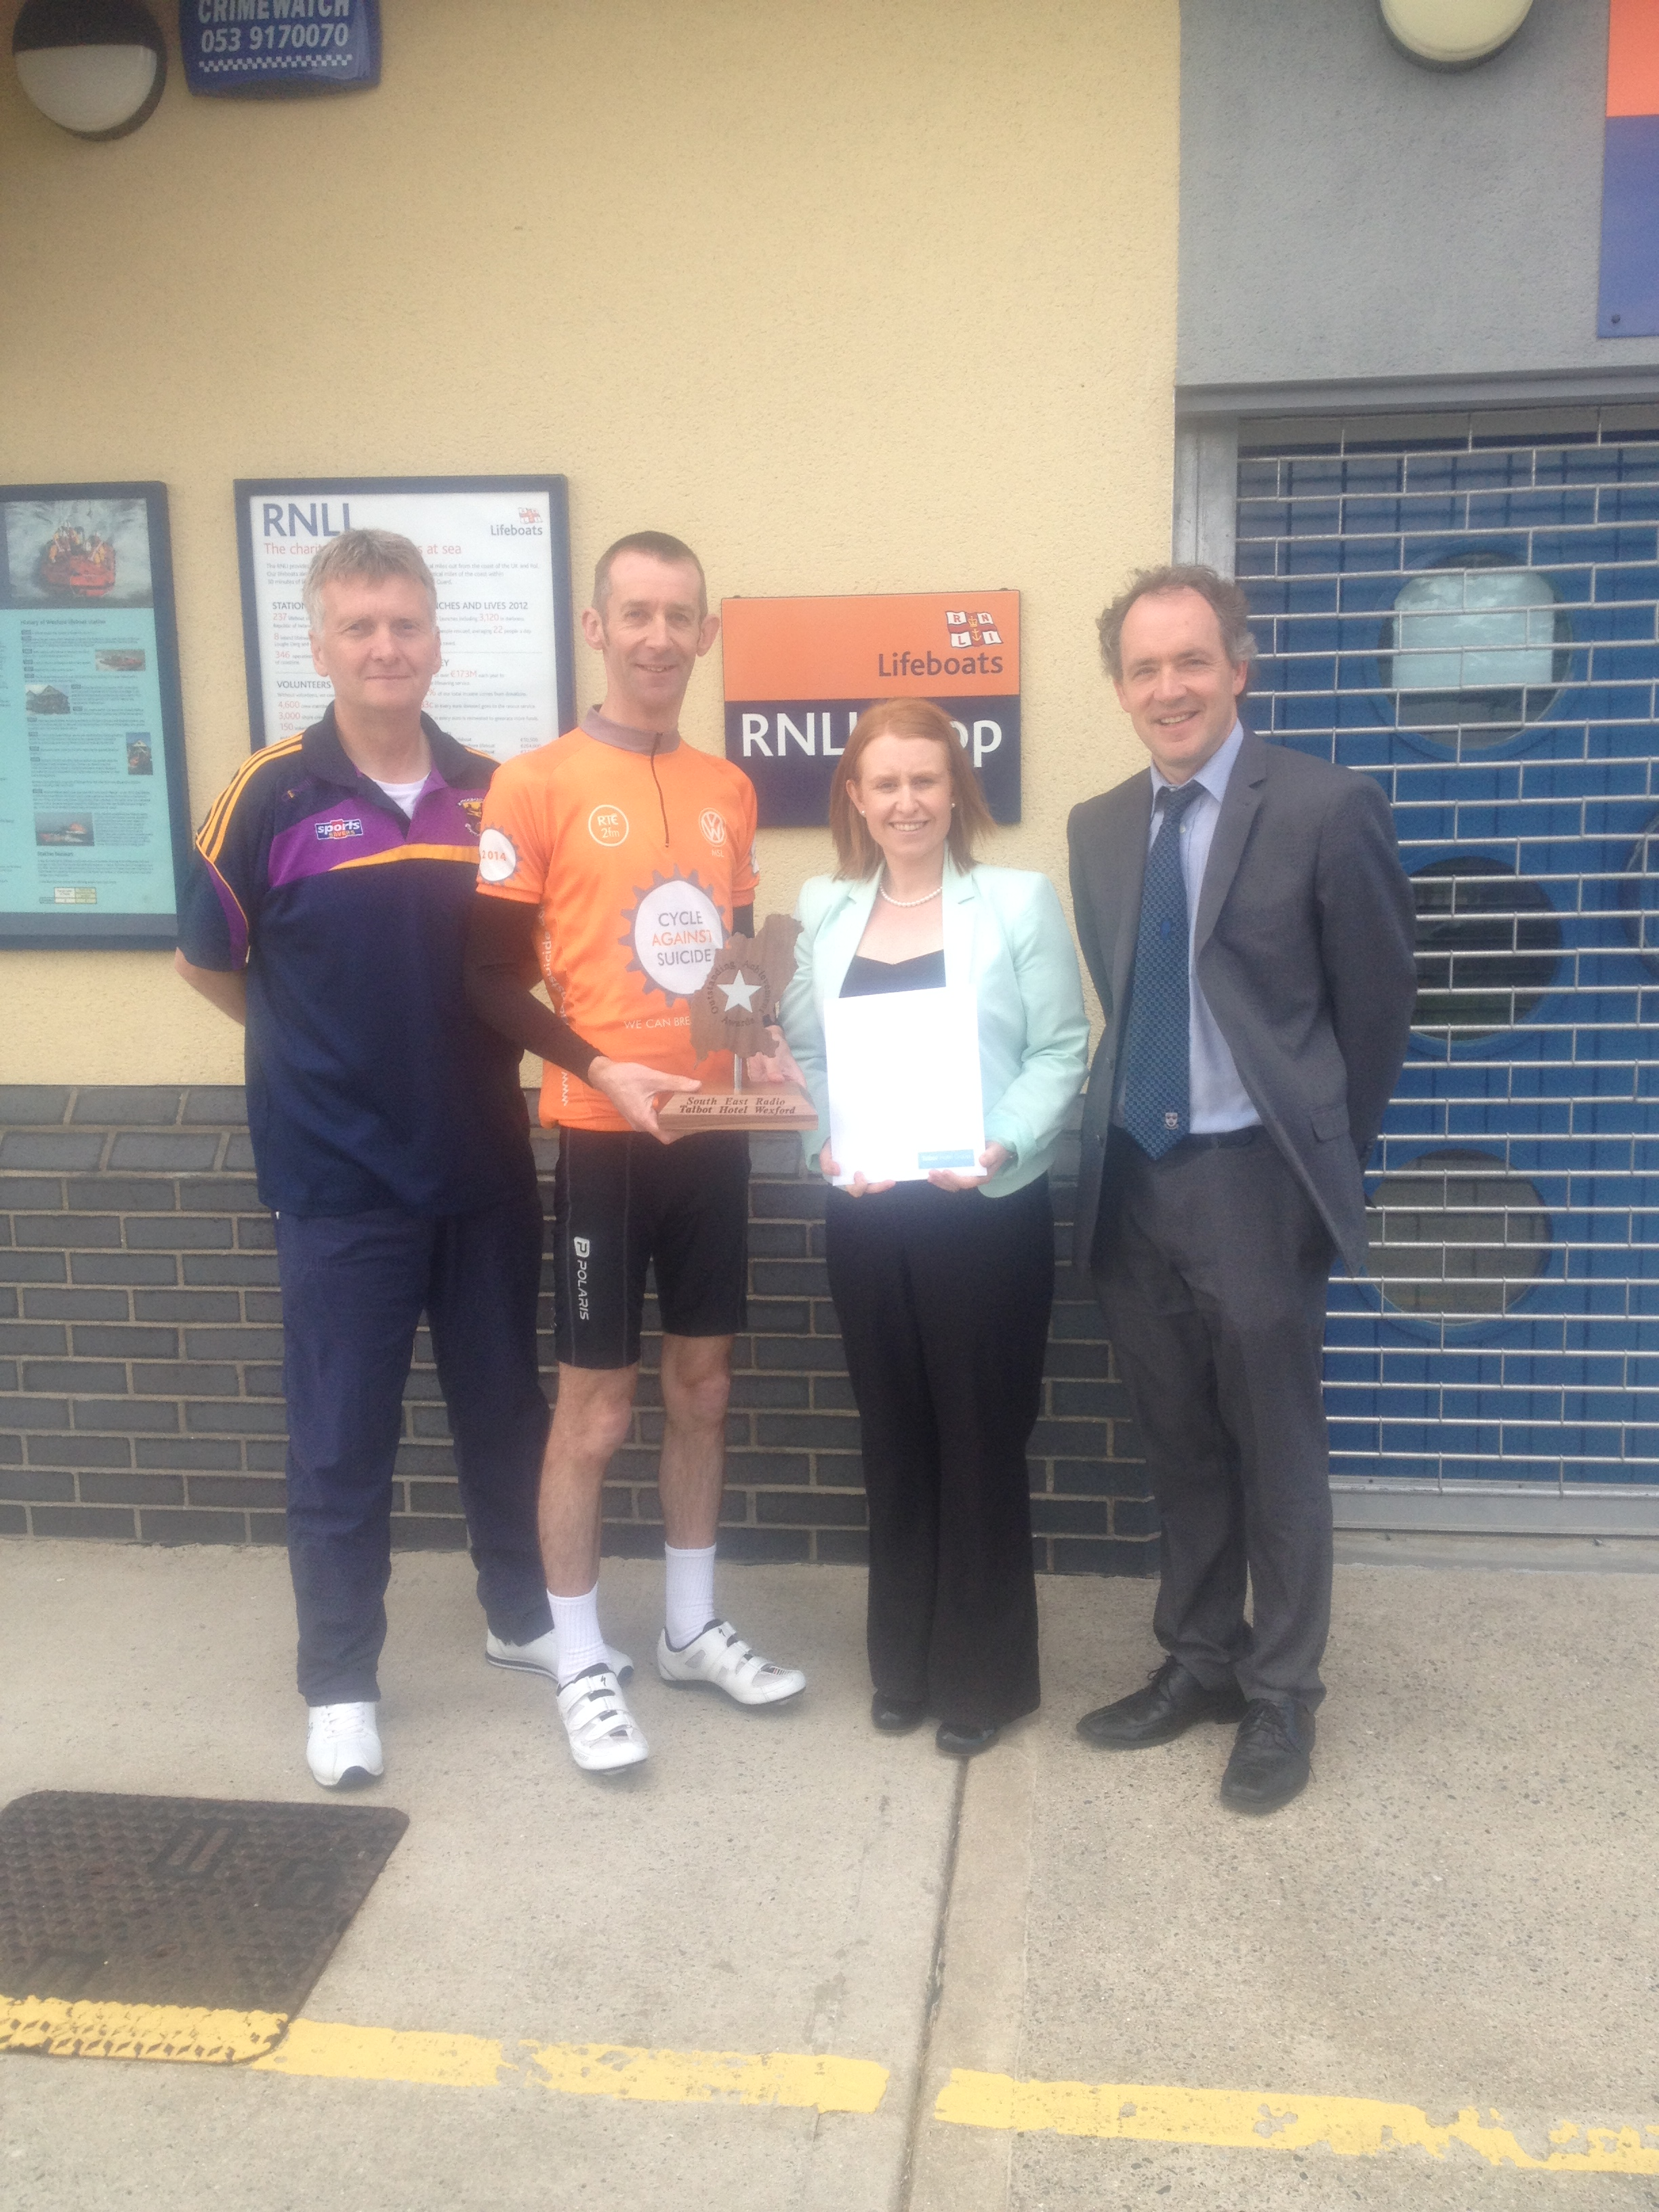 Pictured (l-r) Alan Corcoran (South East Radio), Noel Butler, Sarah Caulfield (Talbot Hotel) and David McGuire ( RNLI/Wexford Wheelers)